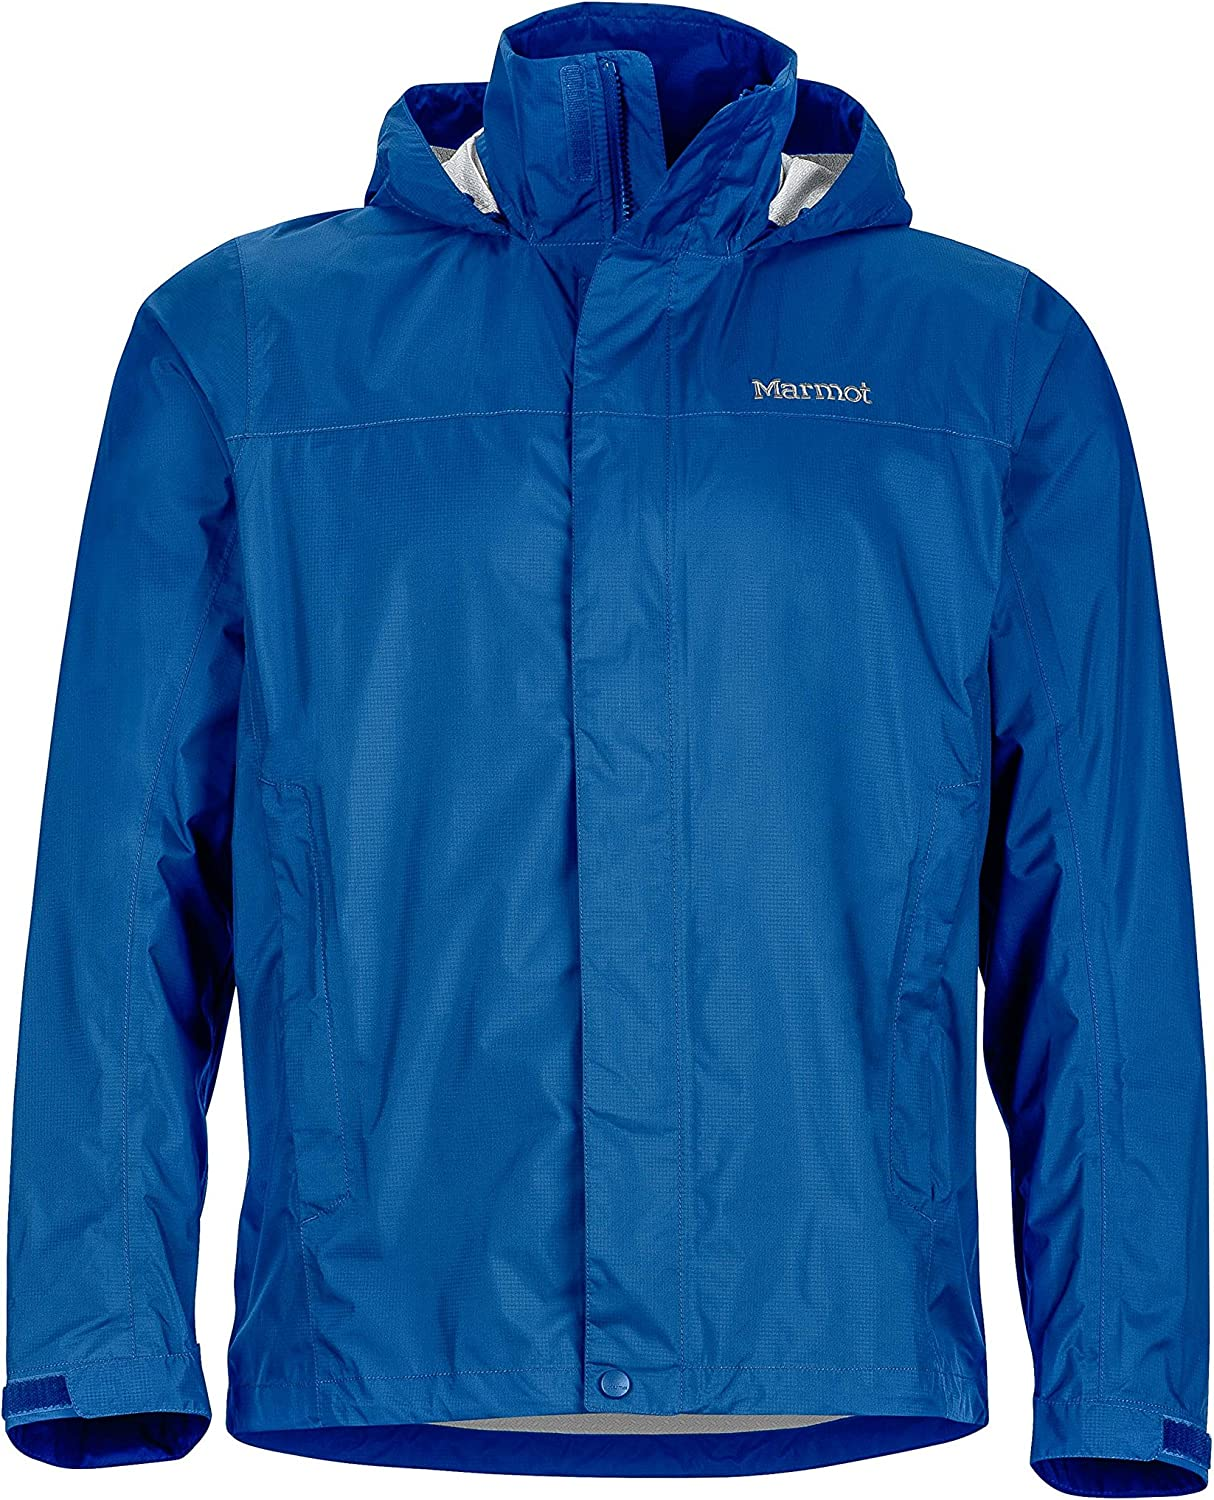 Marmot Men's PreCip Lightweight Waterproof Rain Jacket